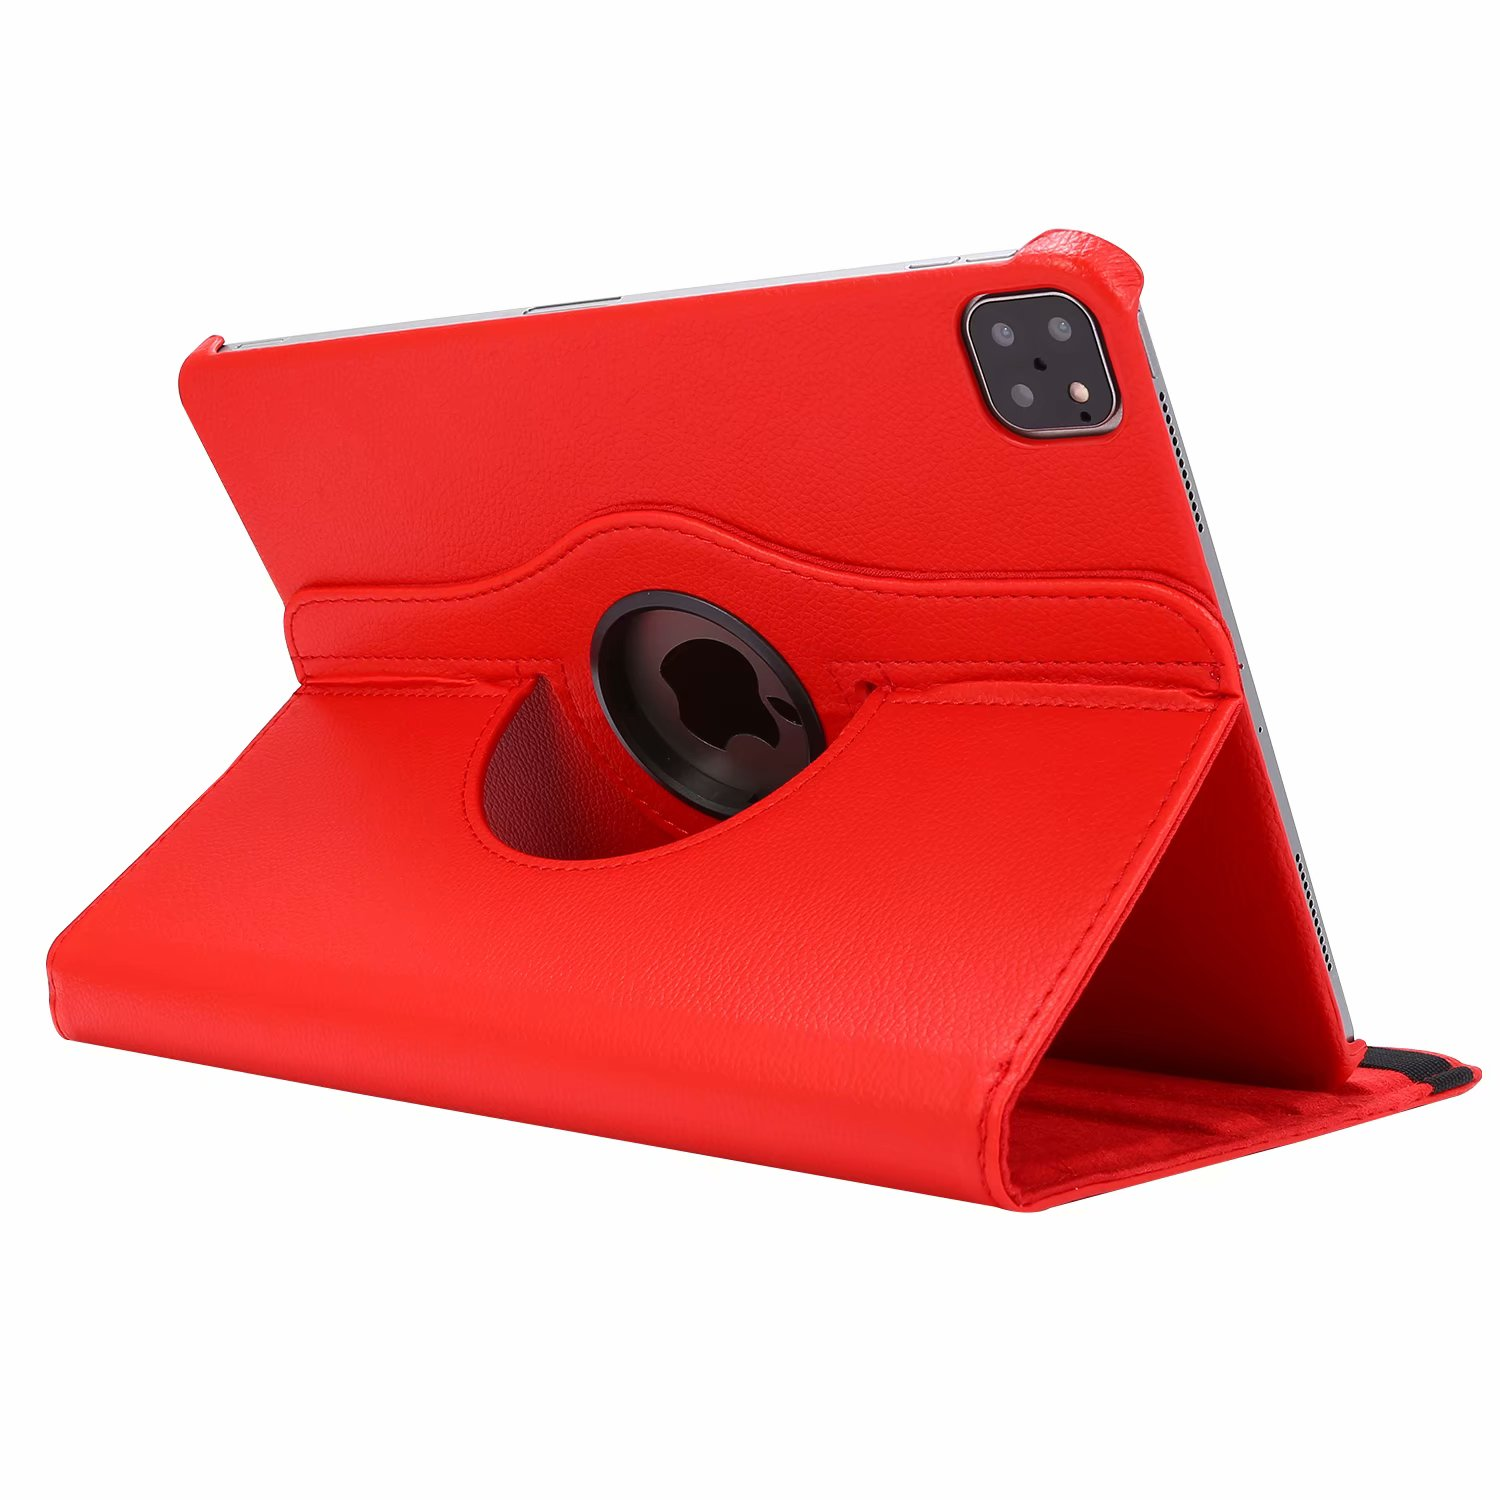 360 A2013 Degree 2021/2020/2018 A2228 A1980 A2230 Cover A2068 iPad 11 A1934 Pro for Case